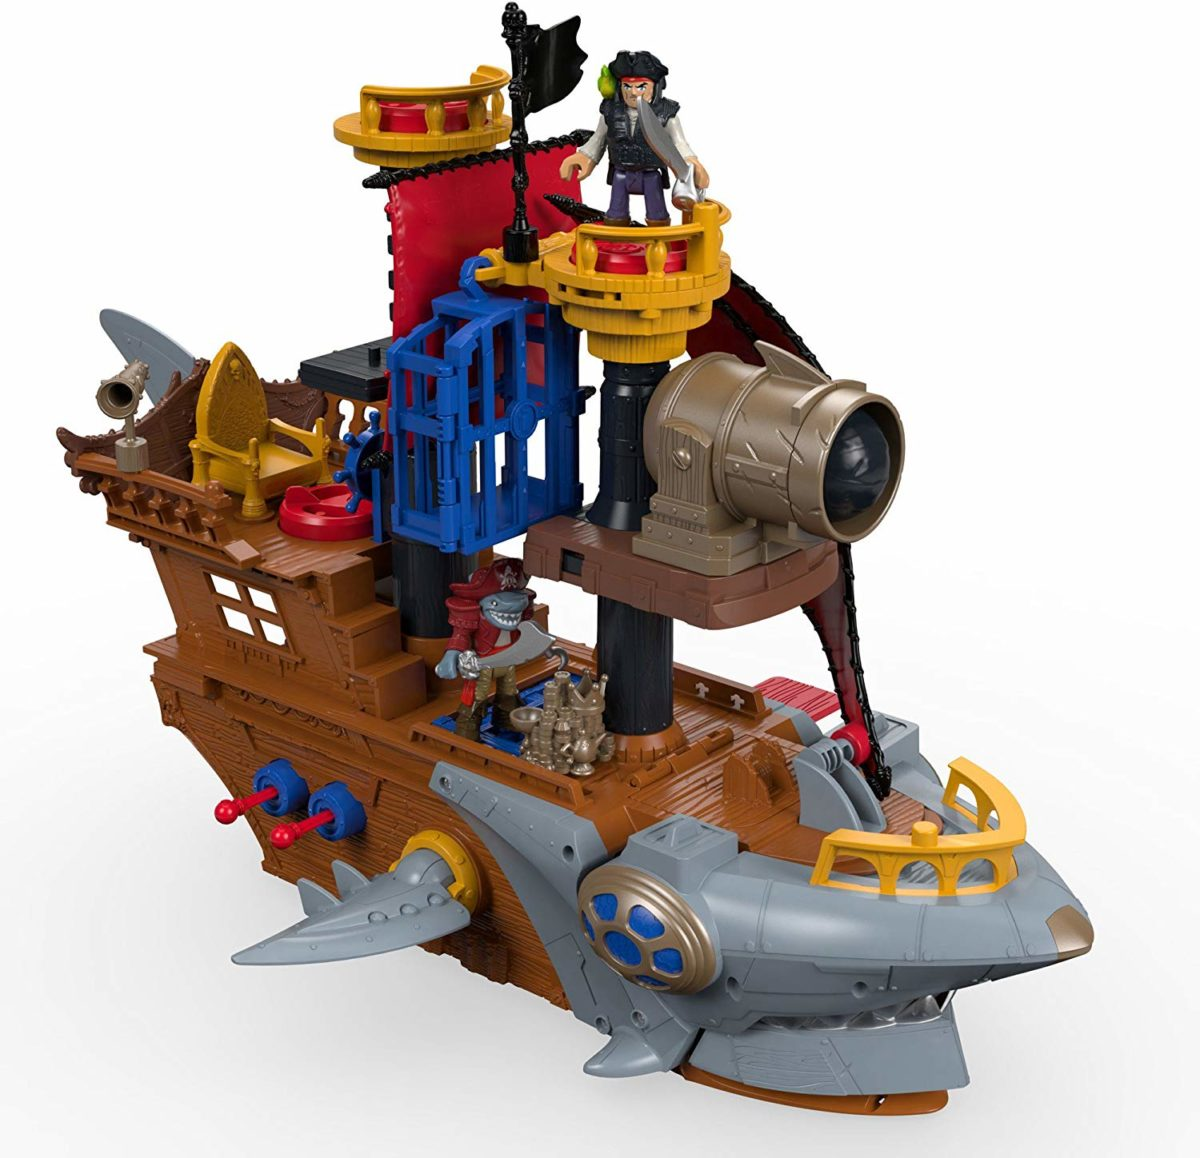 Fisher-Price Imaginext Shark-Bite Pirate Ship - Top Toys and Gifts for Four Year Old Boys 2